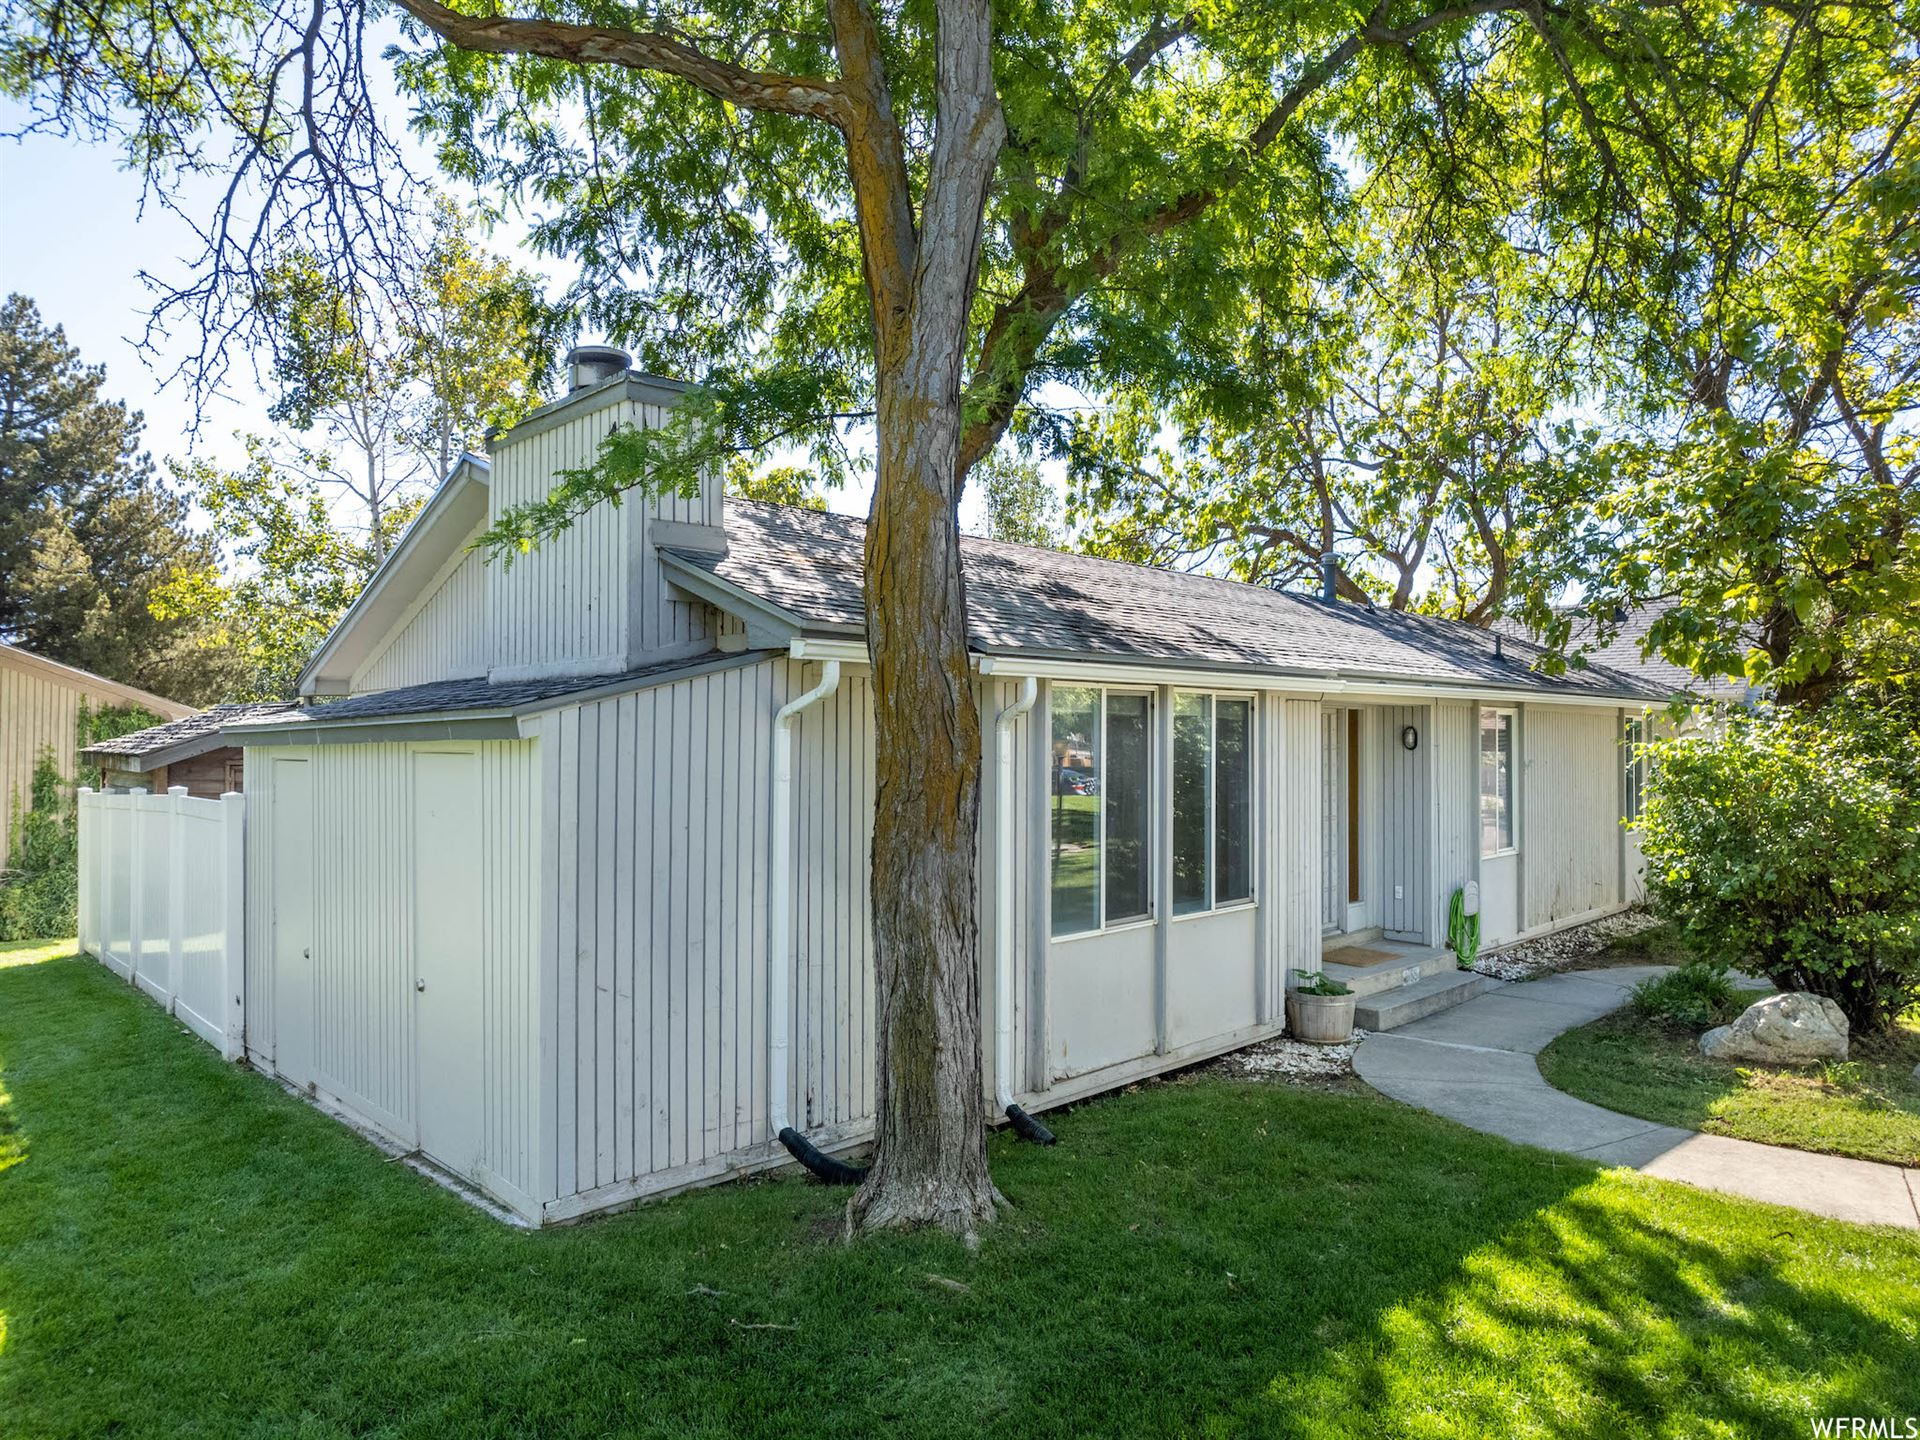 Photo of 3158 W WESTCOVE DR, West Valley City, UT 84119 (MLS # 1770823)